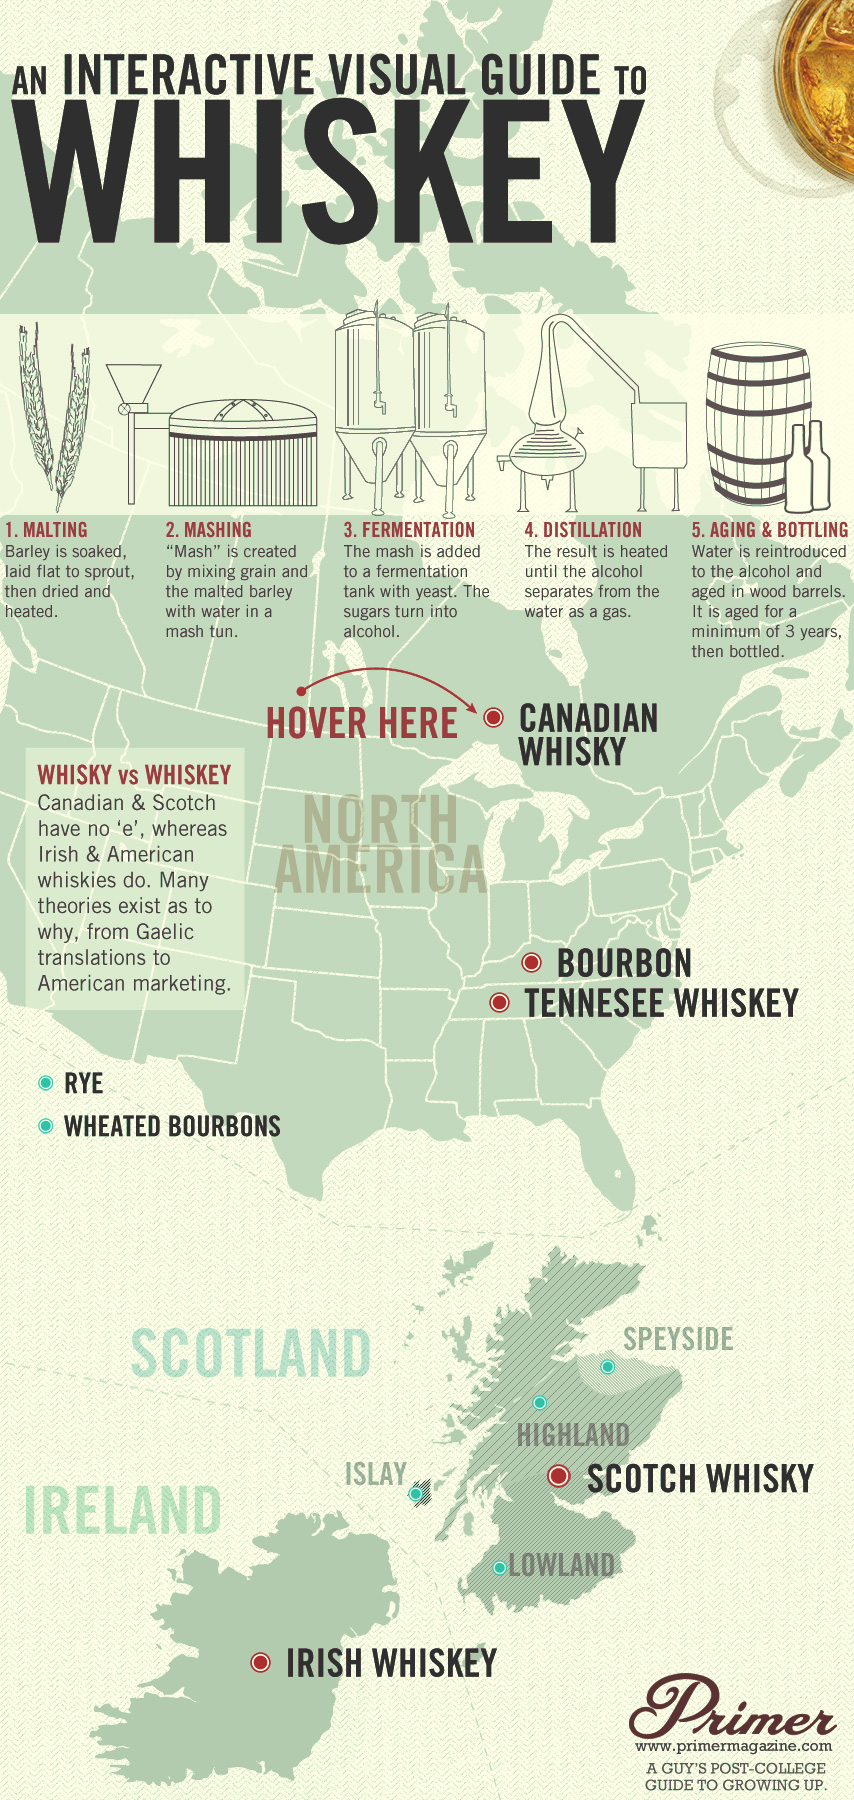 whiskeymap Kentucky Whiskey Tour Map on scotch whisky tour map, kentucky wine trail passport, kentucky distillery tours, tennessee distilleries map, bourbon county map, bardstown ky winery map, kentucky bourbon trail passport, bourbon trail map,